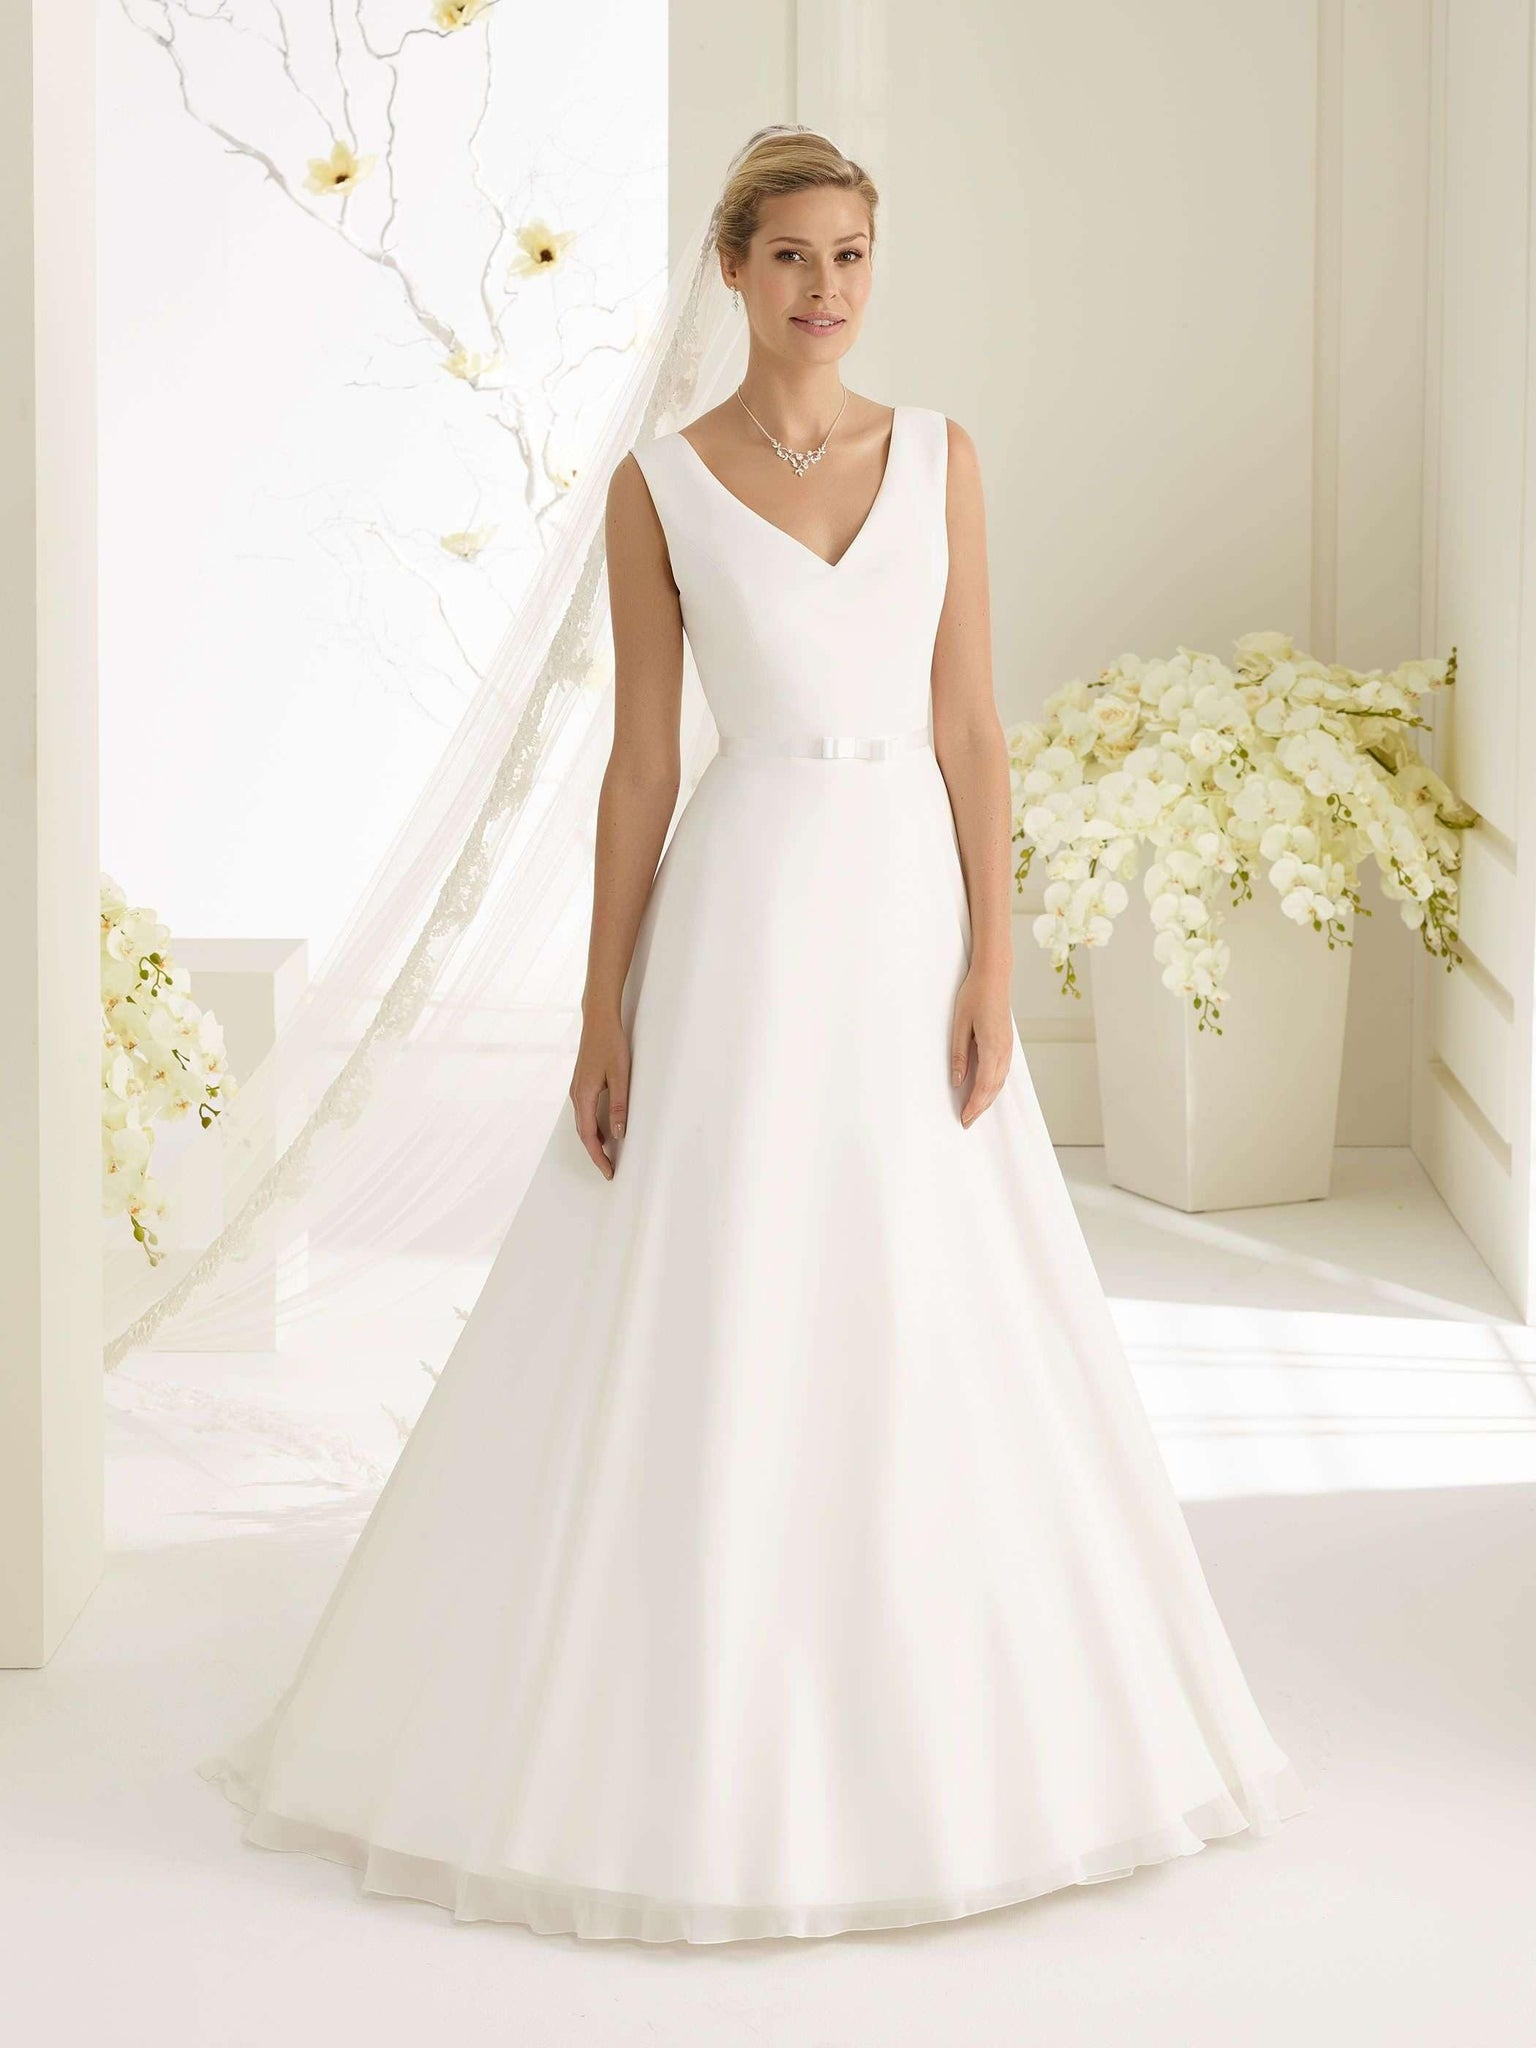 Dalila PLUS - Adore Bridal and Occasion Wear